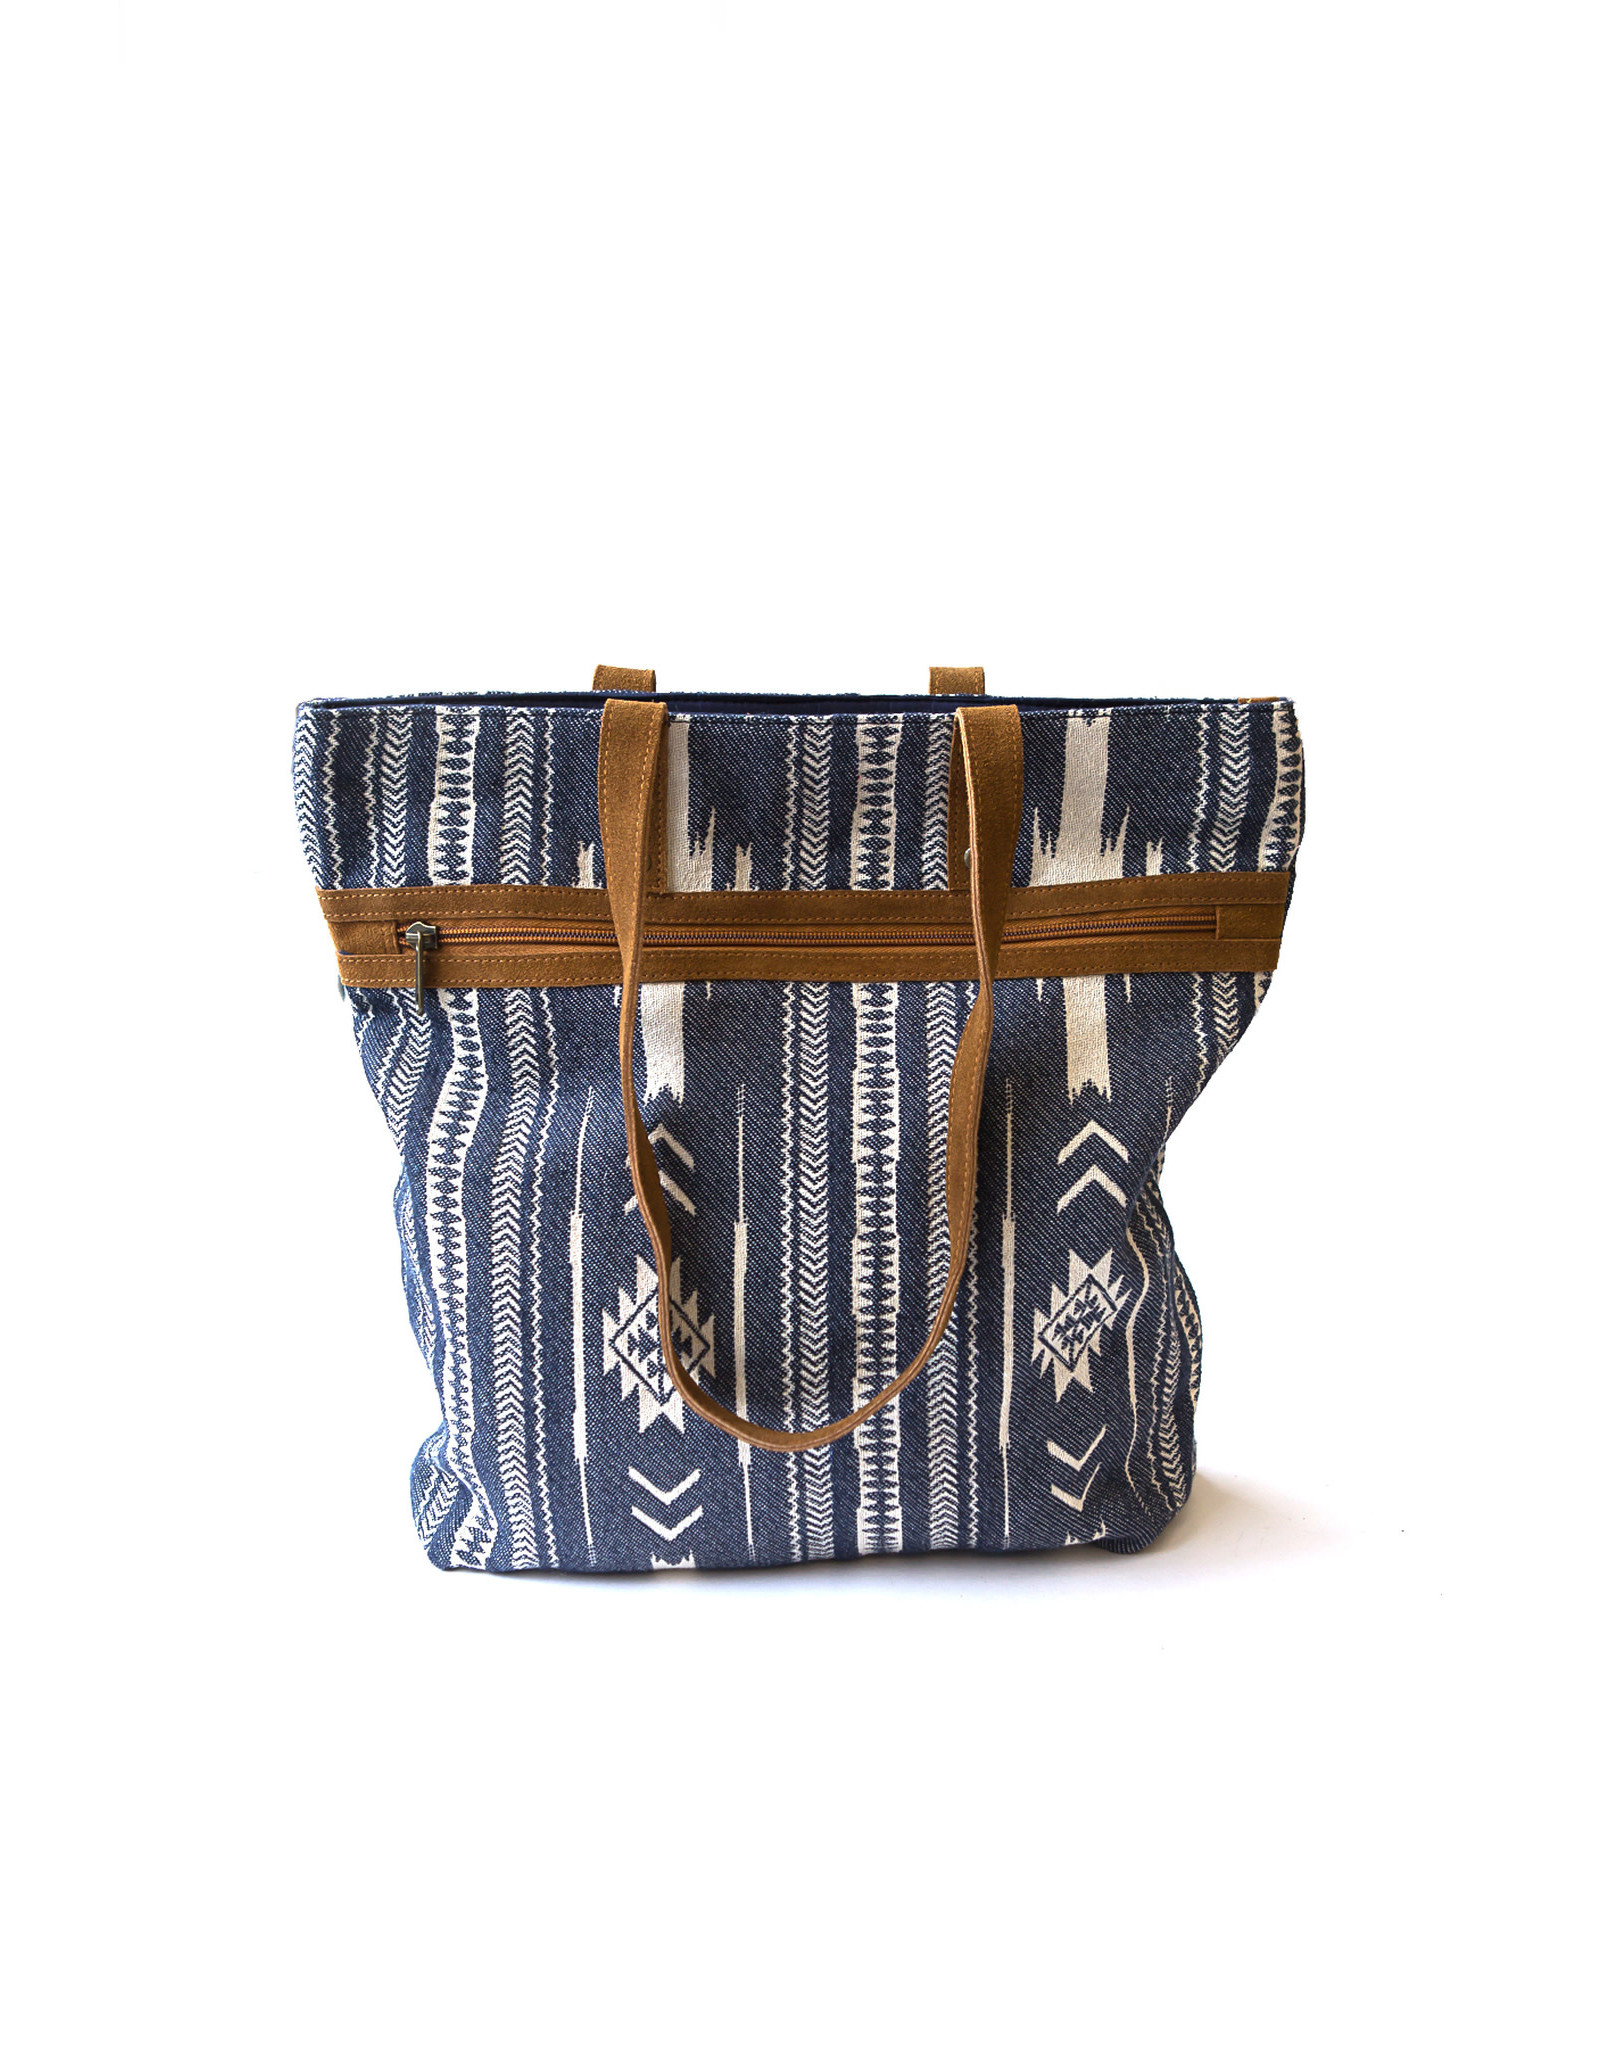 Rover Patterned Purse, Blue, India